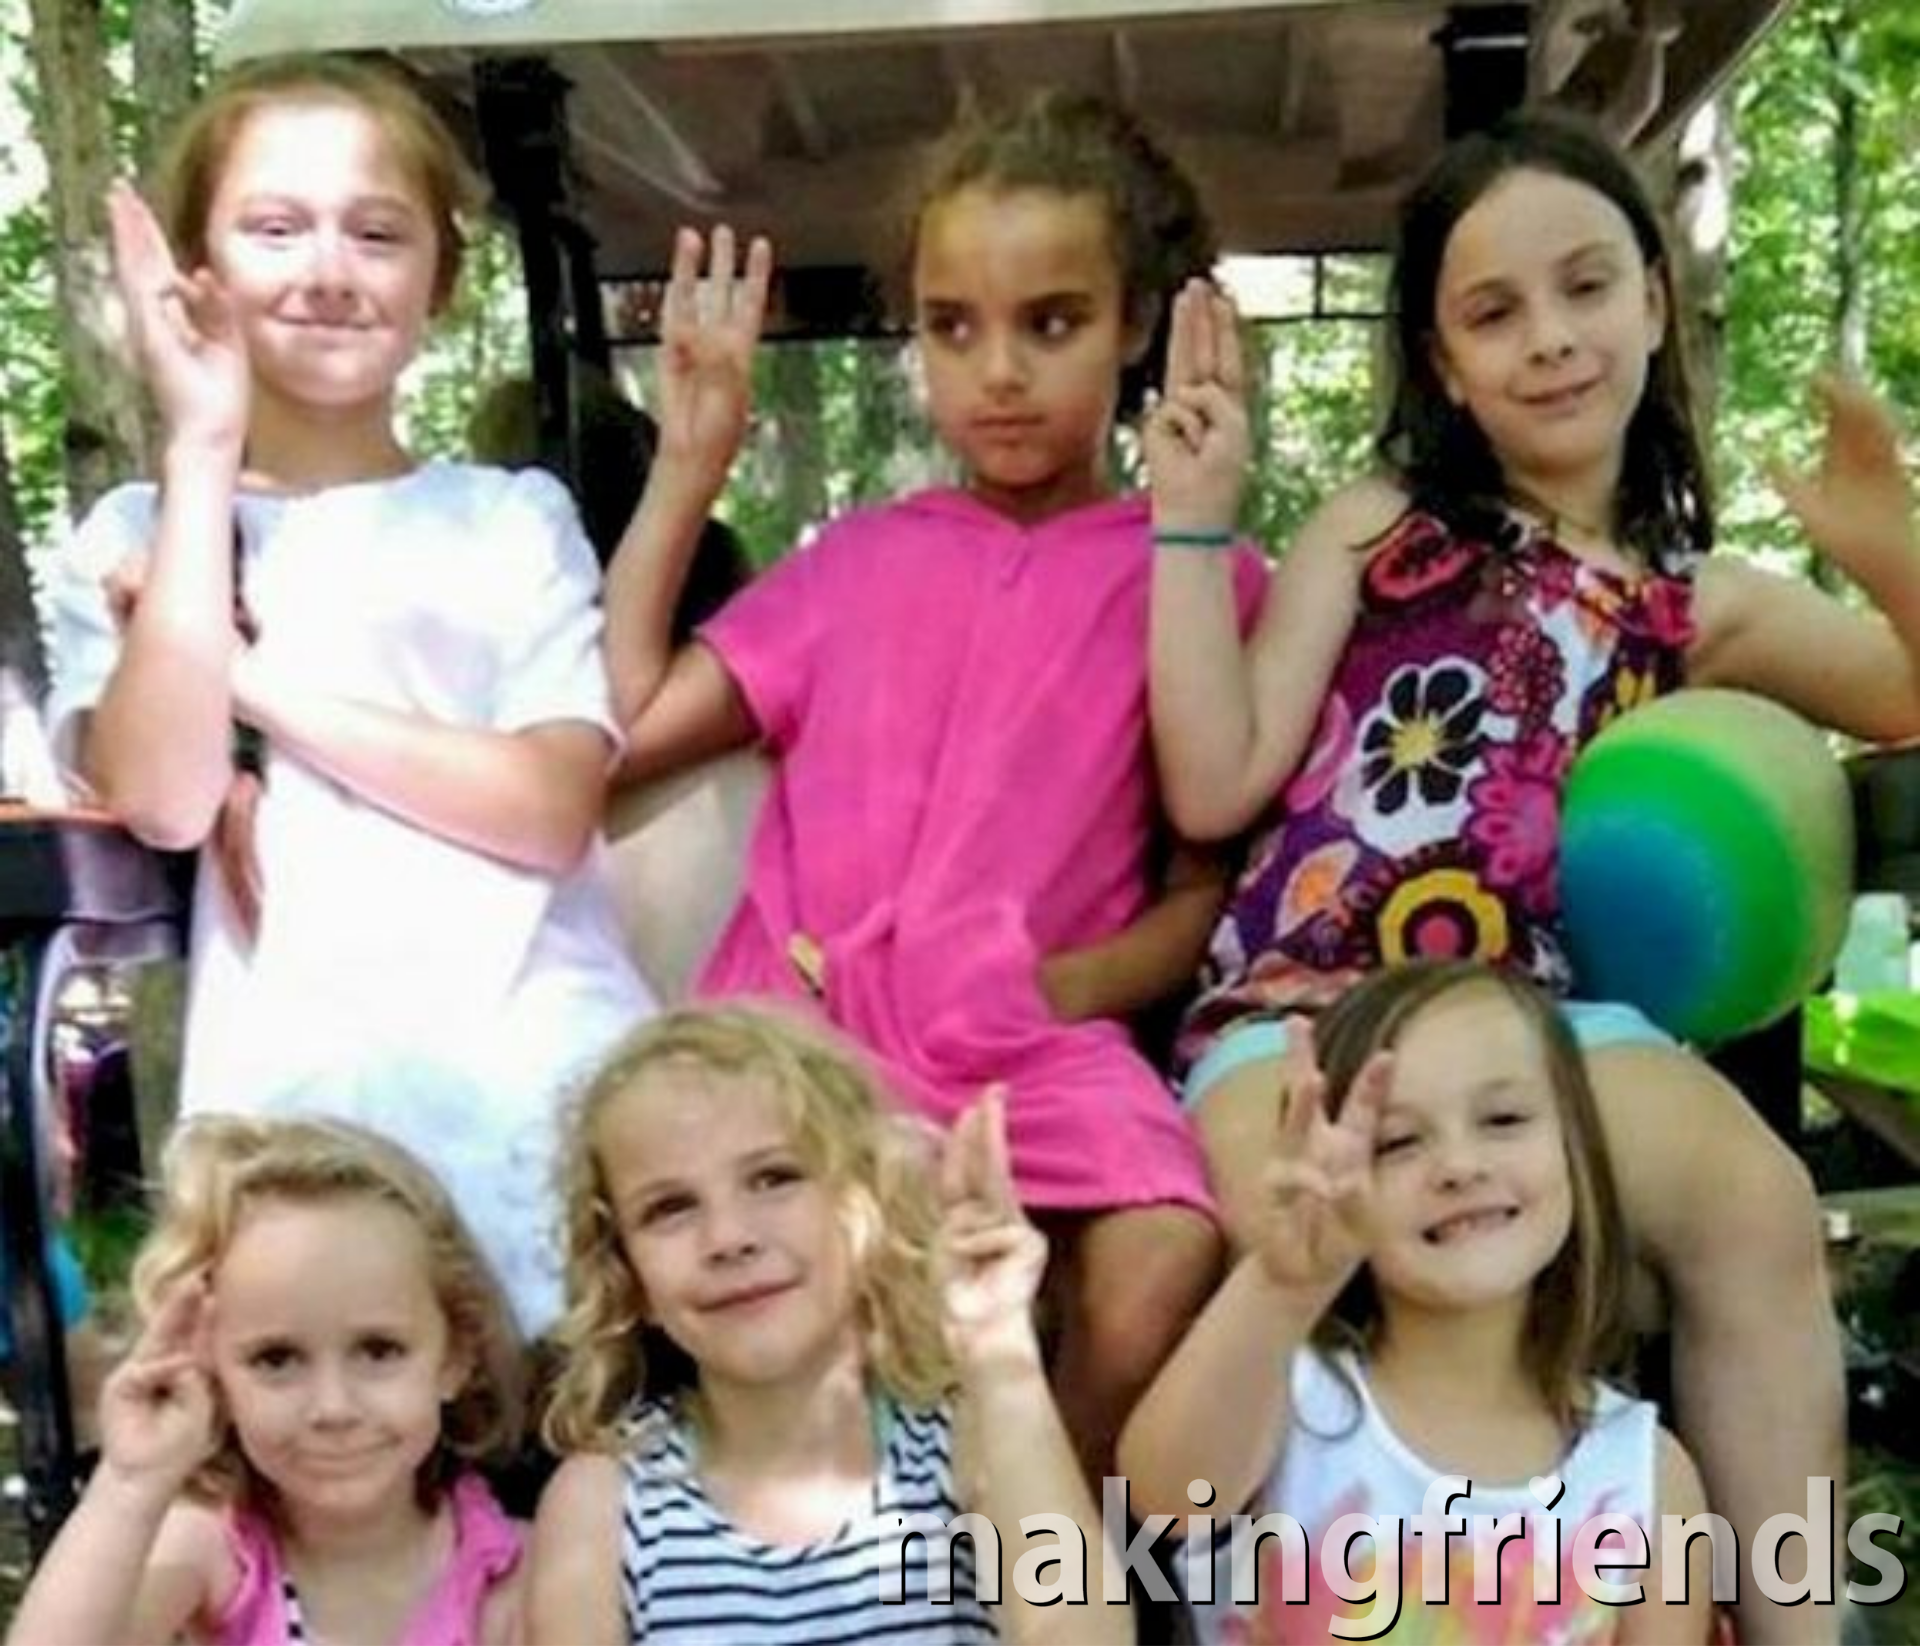 Get your newtroop started for a successful year by learning the Promise with fun crafts and activities from MakingFriends®.com. #makingfriends #gspromise via @gsleader411